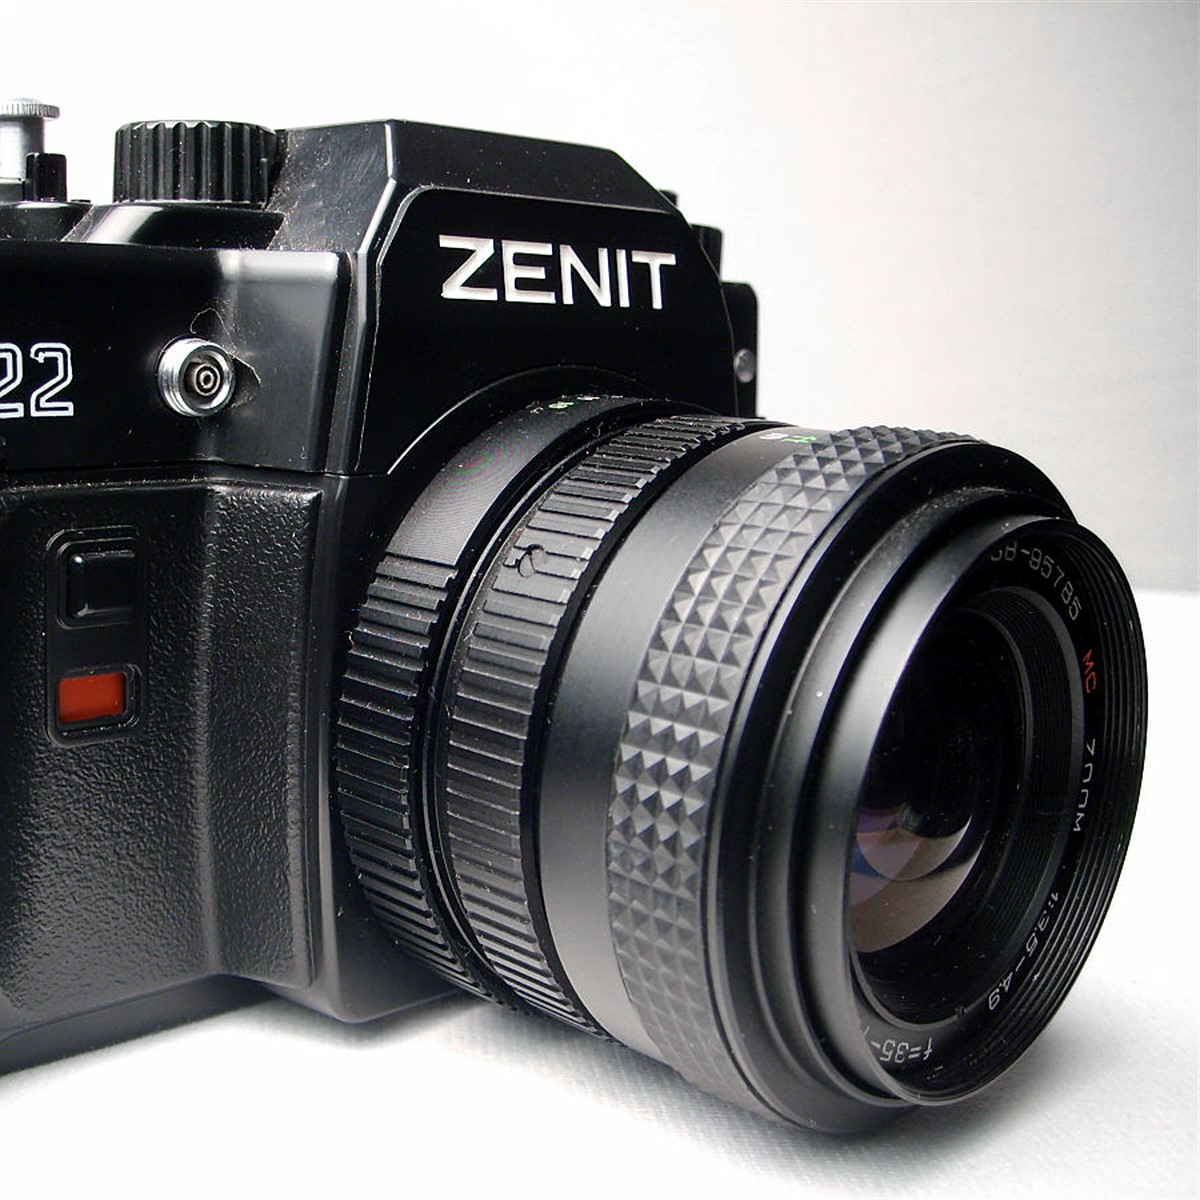 Zenit Is Back In Business Plans To Release Full Frame Mirrorless Camera In 2018 Digital Photography Review